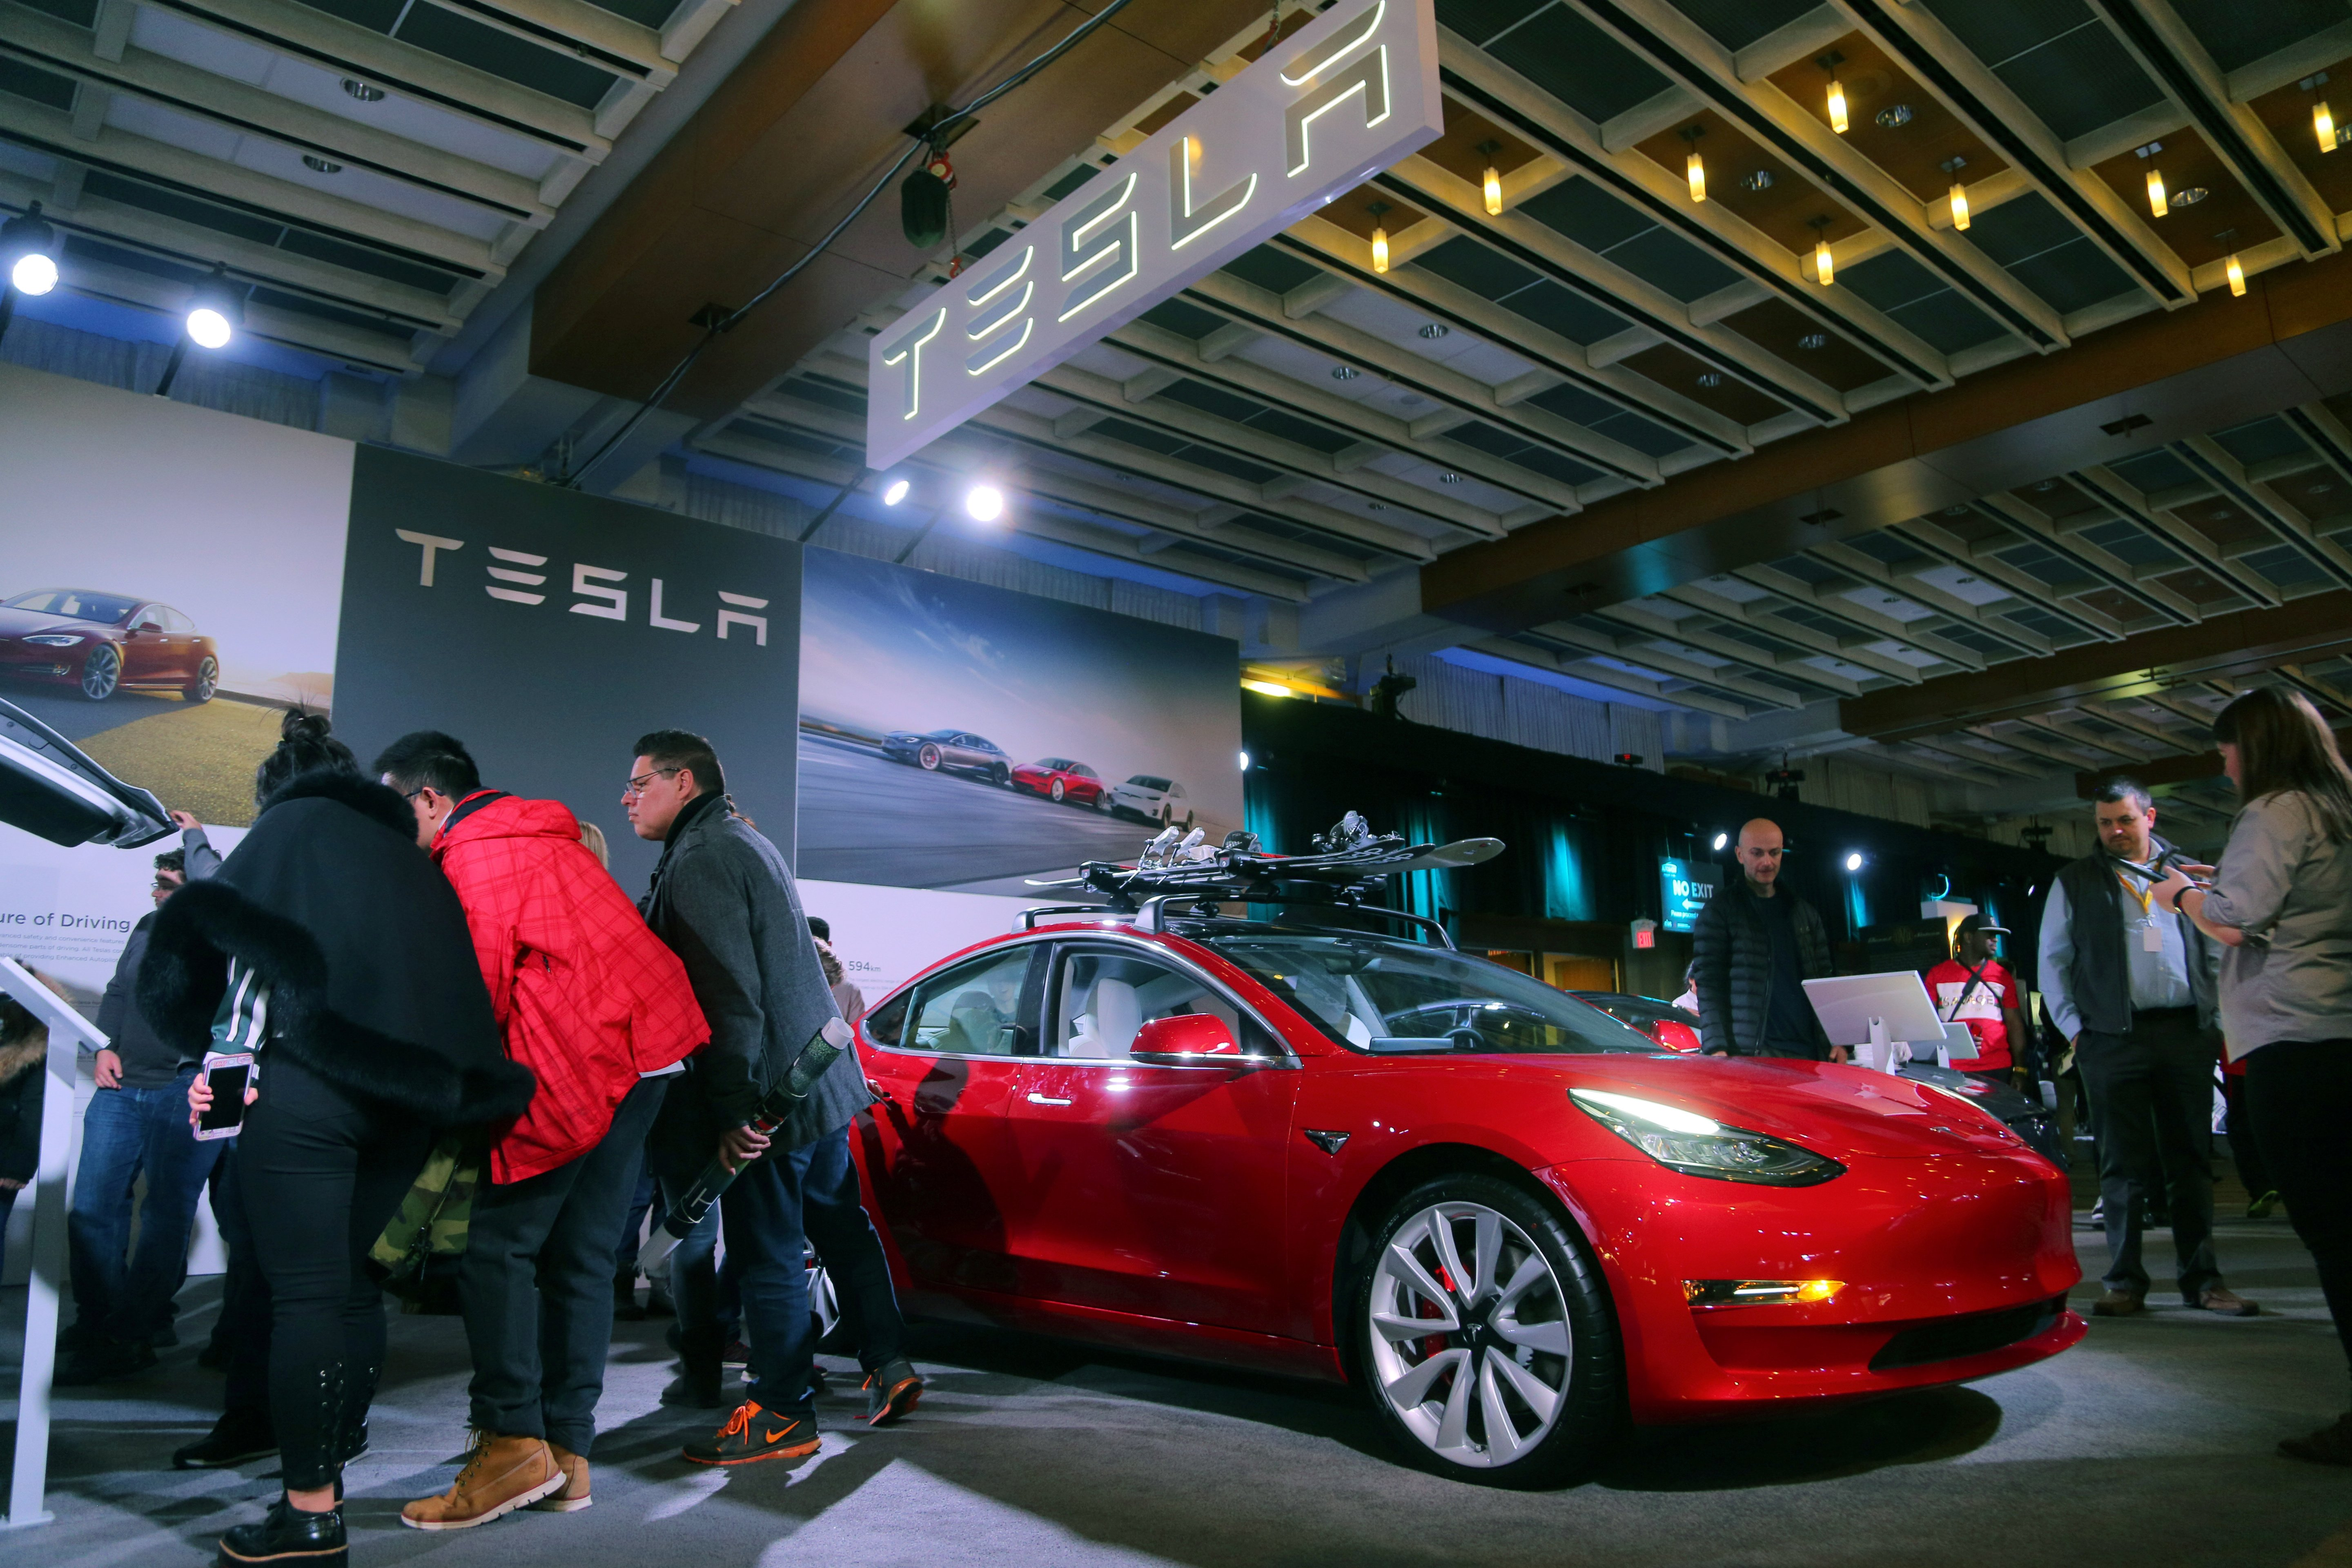 A Tesla Model 3 car is displayed at the Canadian International AutoShow in Toronto